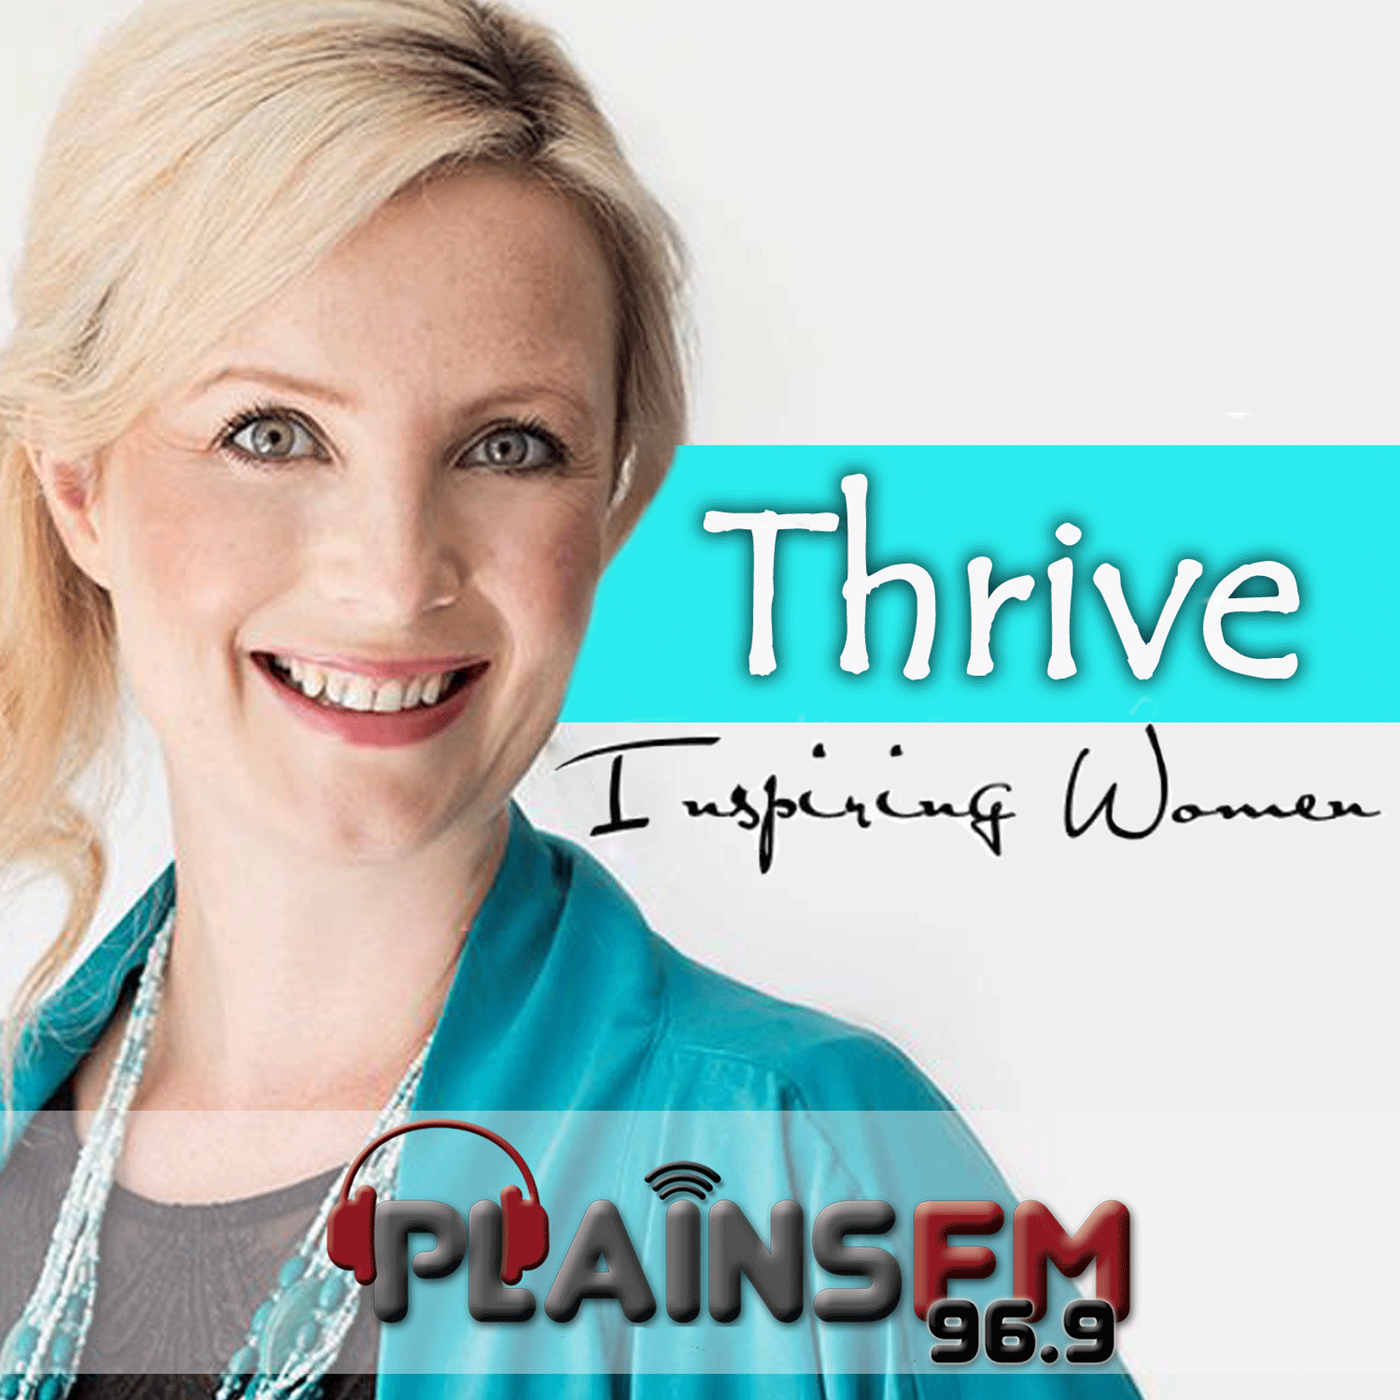 Thrive - Inspiring Women-18-09-2019 - Tray Mortensen – Holistic Healthcare Practitioner